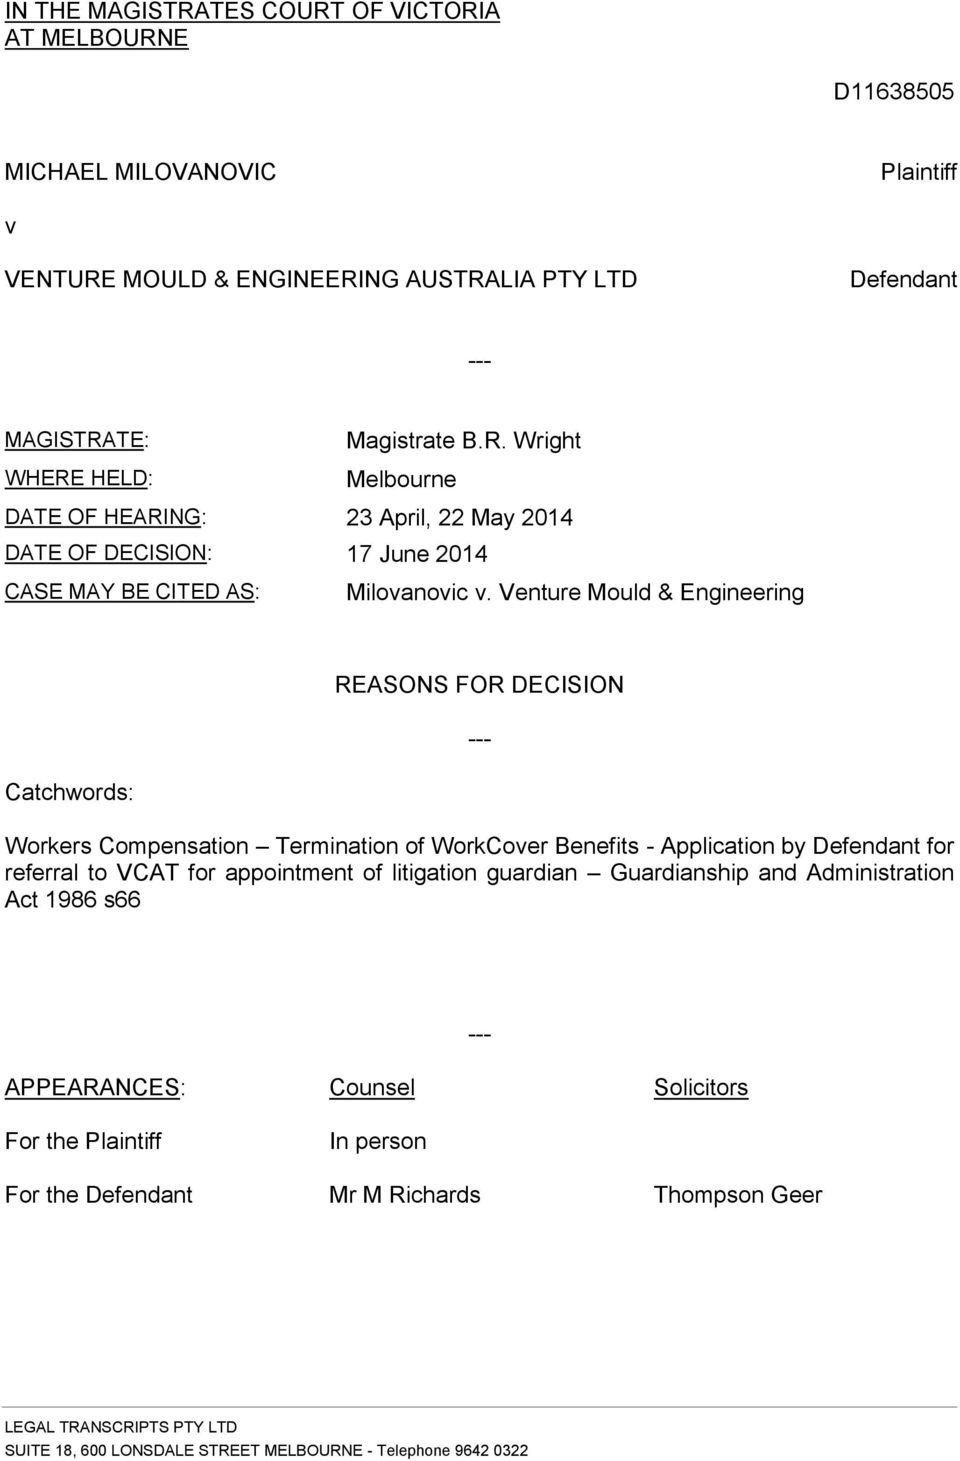 Venture Mould & Engineering REASONS FOR DECISION --- Catchwords: Workers Compensation Termination of WorkCover Benefits - Application by Defendant for referral to VCAT for appointment of litigation